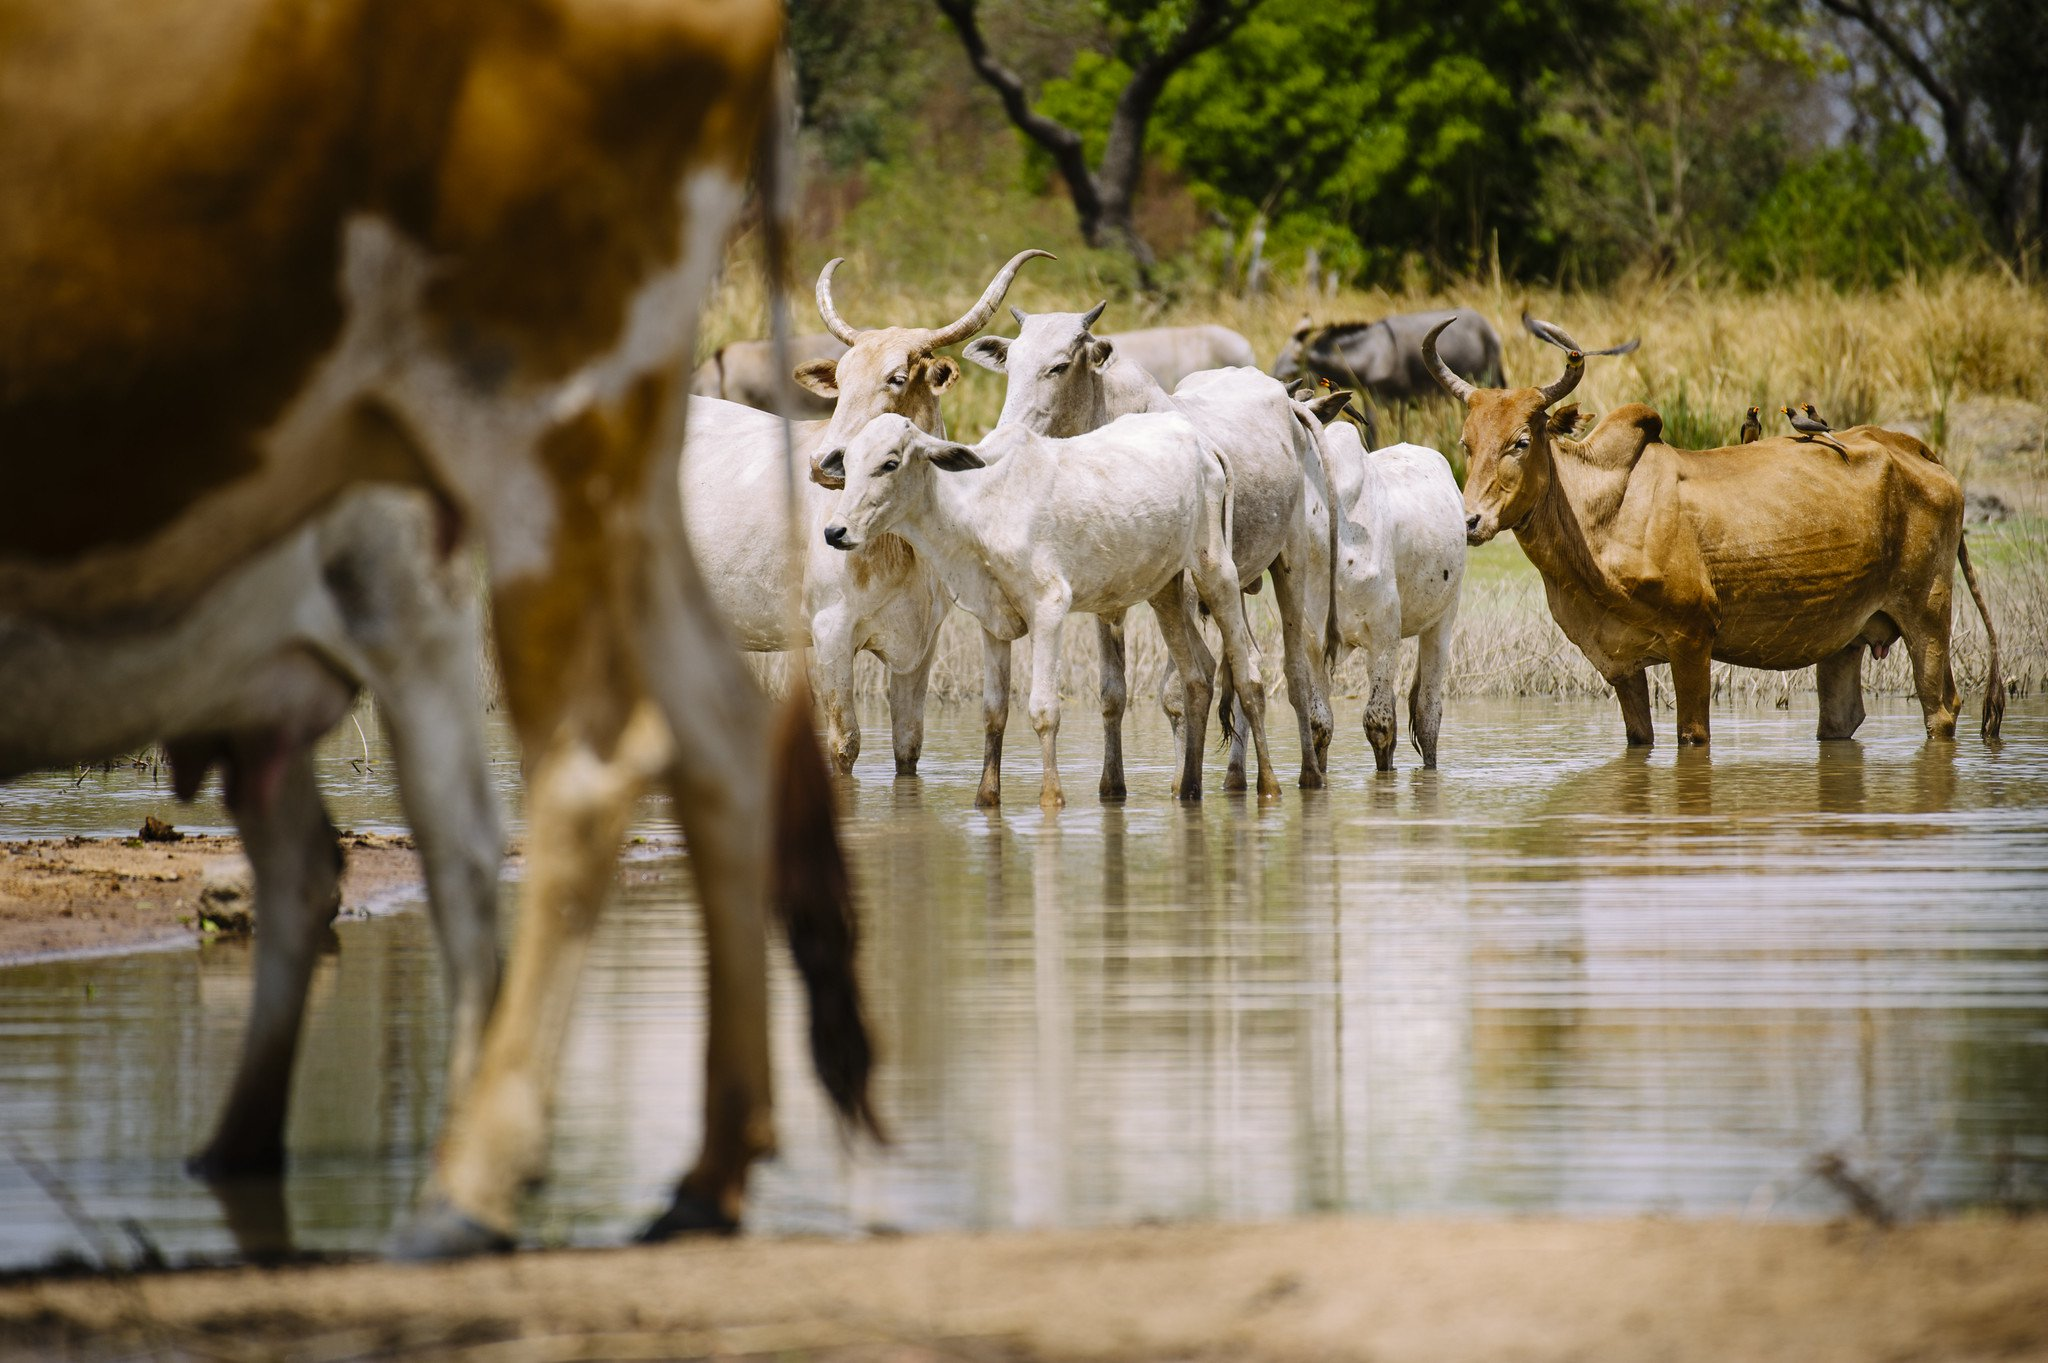 Cattle cool down in a reservoir, often the last water point during the hottest and driest months of the year, in Zorro village, Burkina Faso